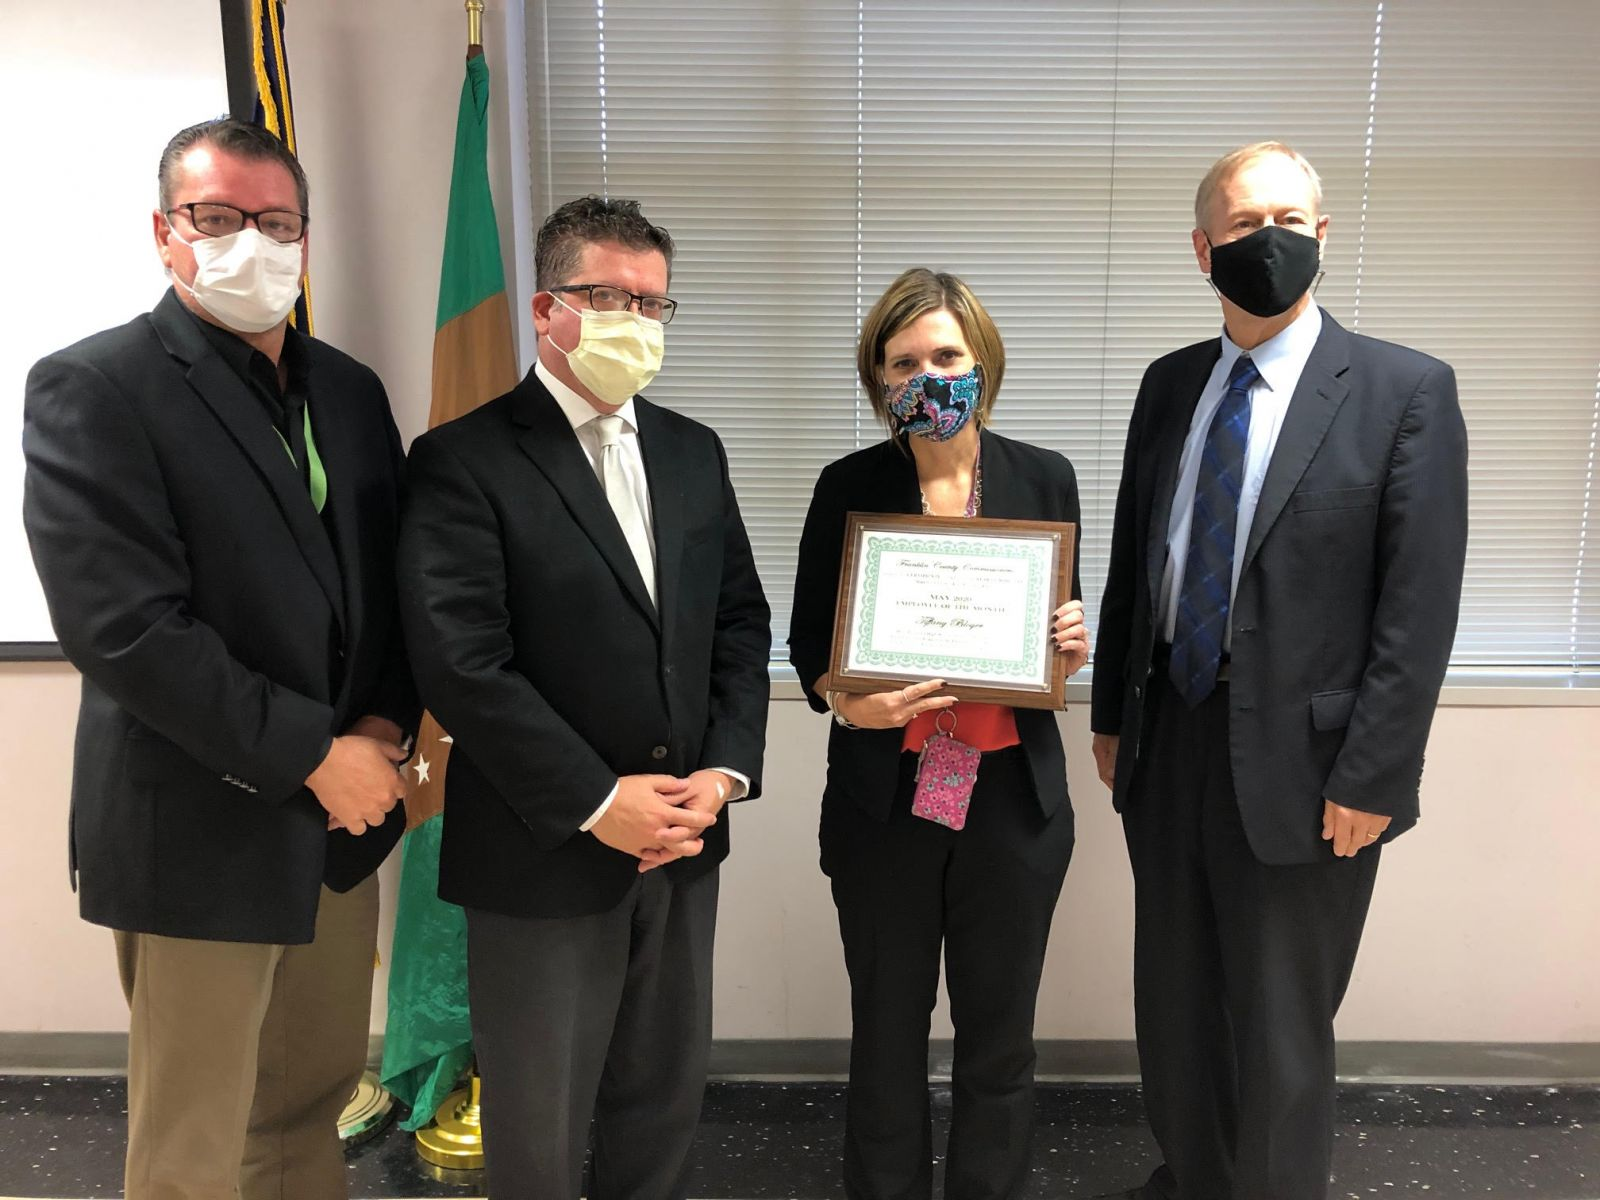 Pictured (left to right): Commissioner John Flannery, Commissioner Chairman Dave Keller, Human Services Director Tiffany Bloyer, and Commissioner Bob Ziobrowski